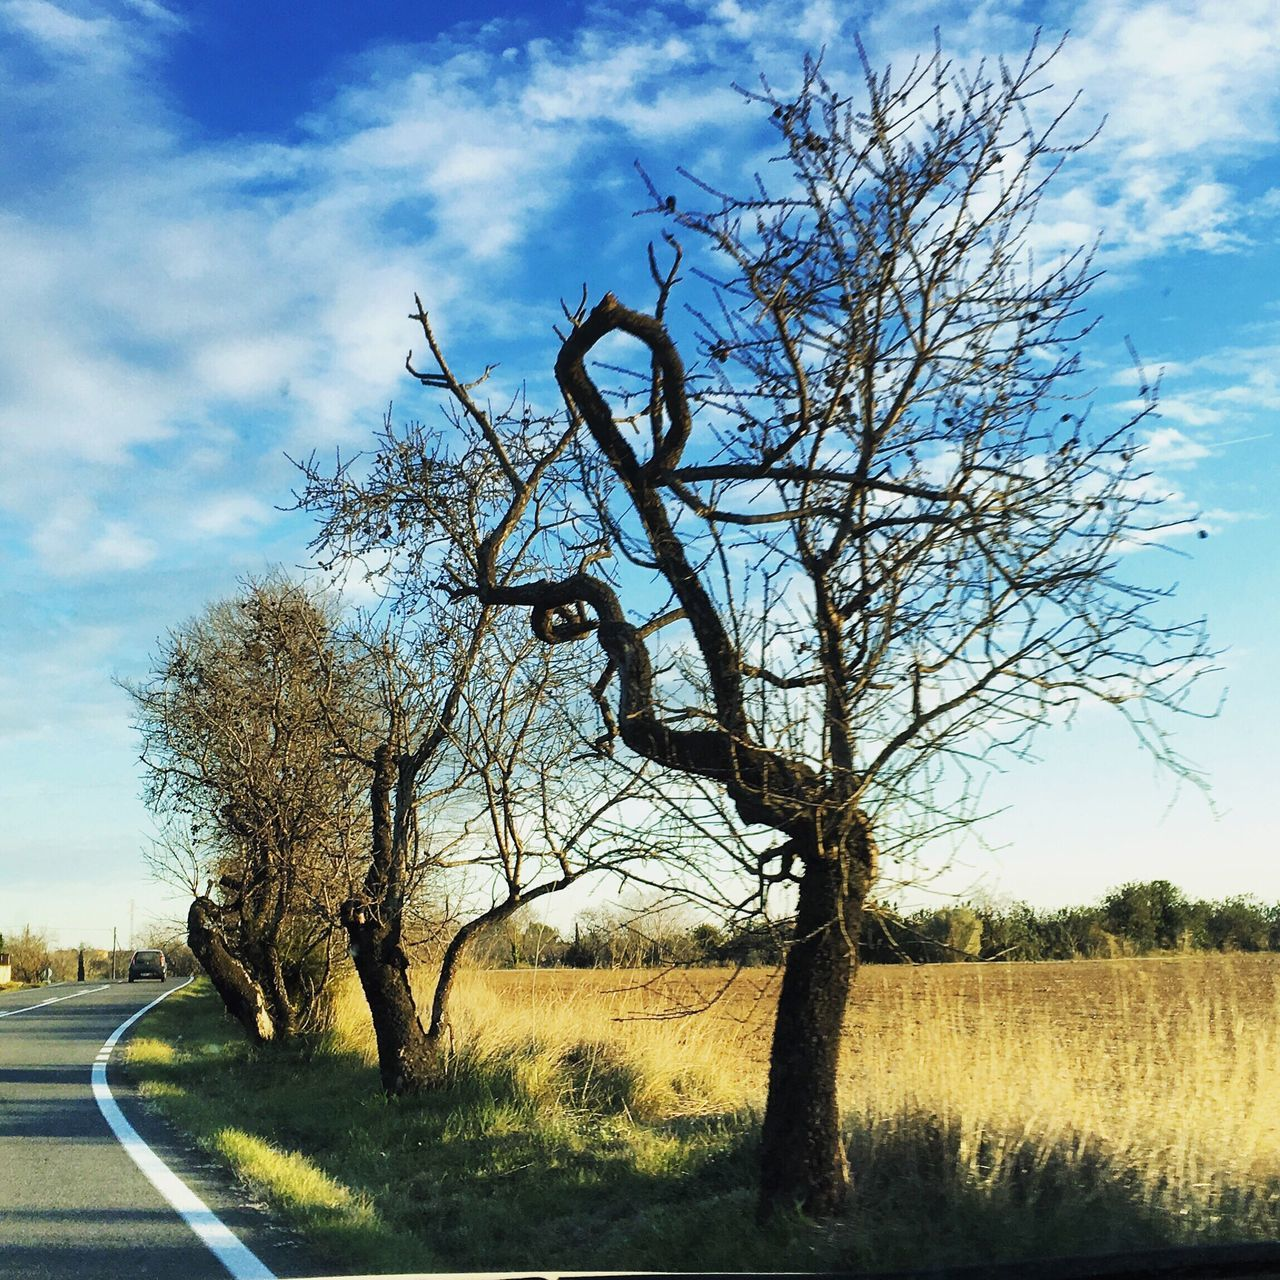 bare tree, tree, landscape, sky, road, day, nature, tranquility, outdoors, no people, beauty in nature, grass, scenics